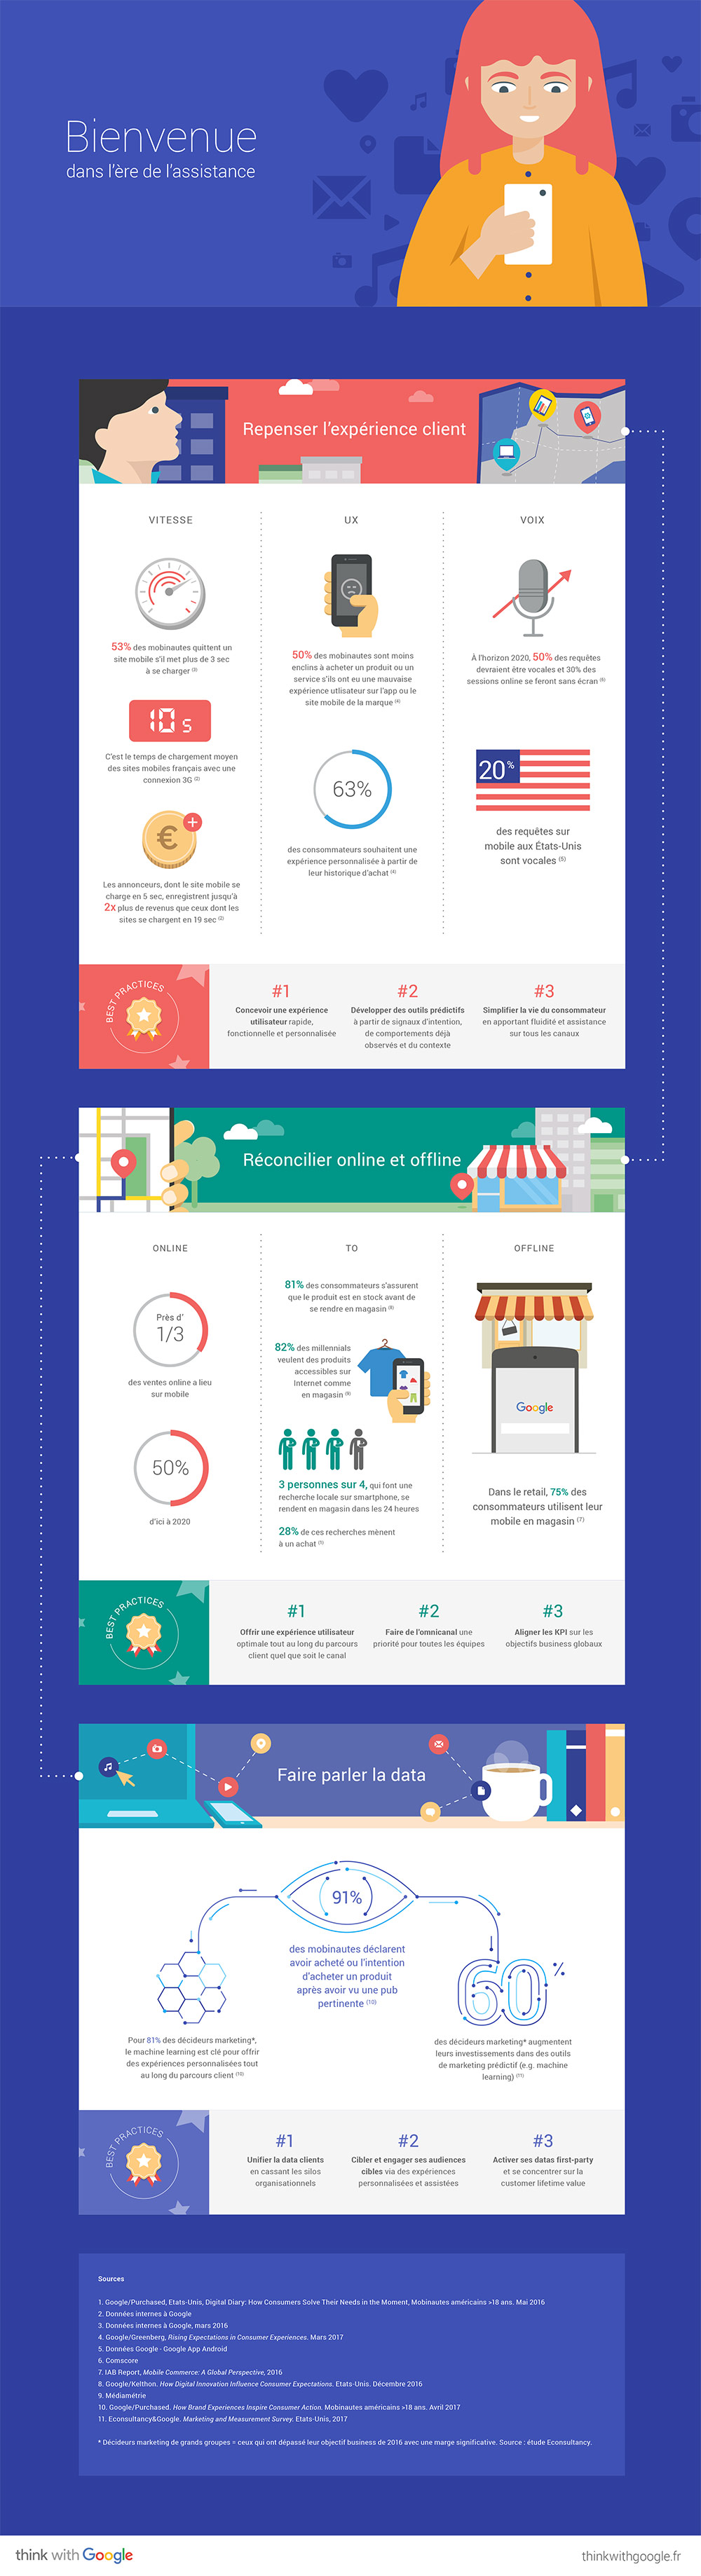 thinkwithgoogle_infographie_mobile_search